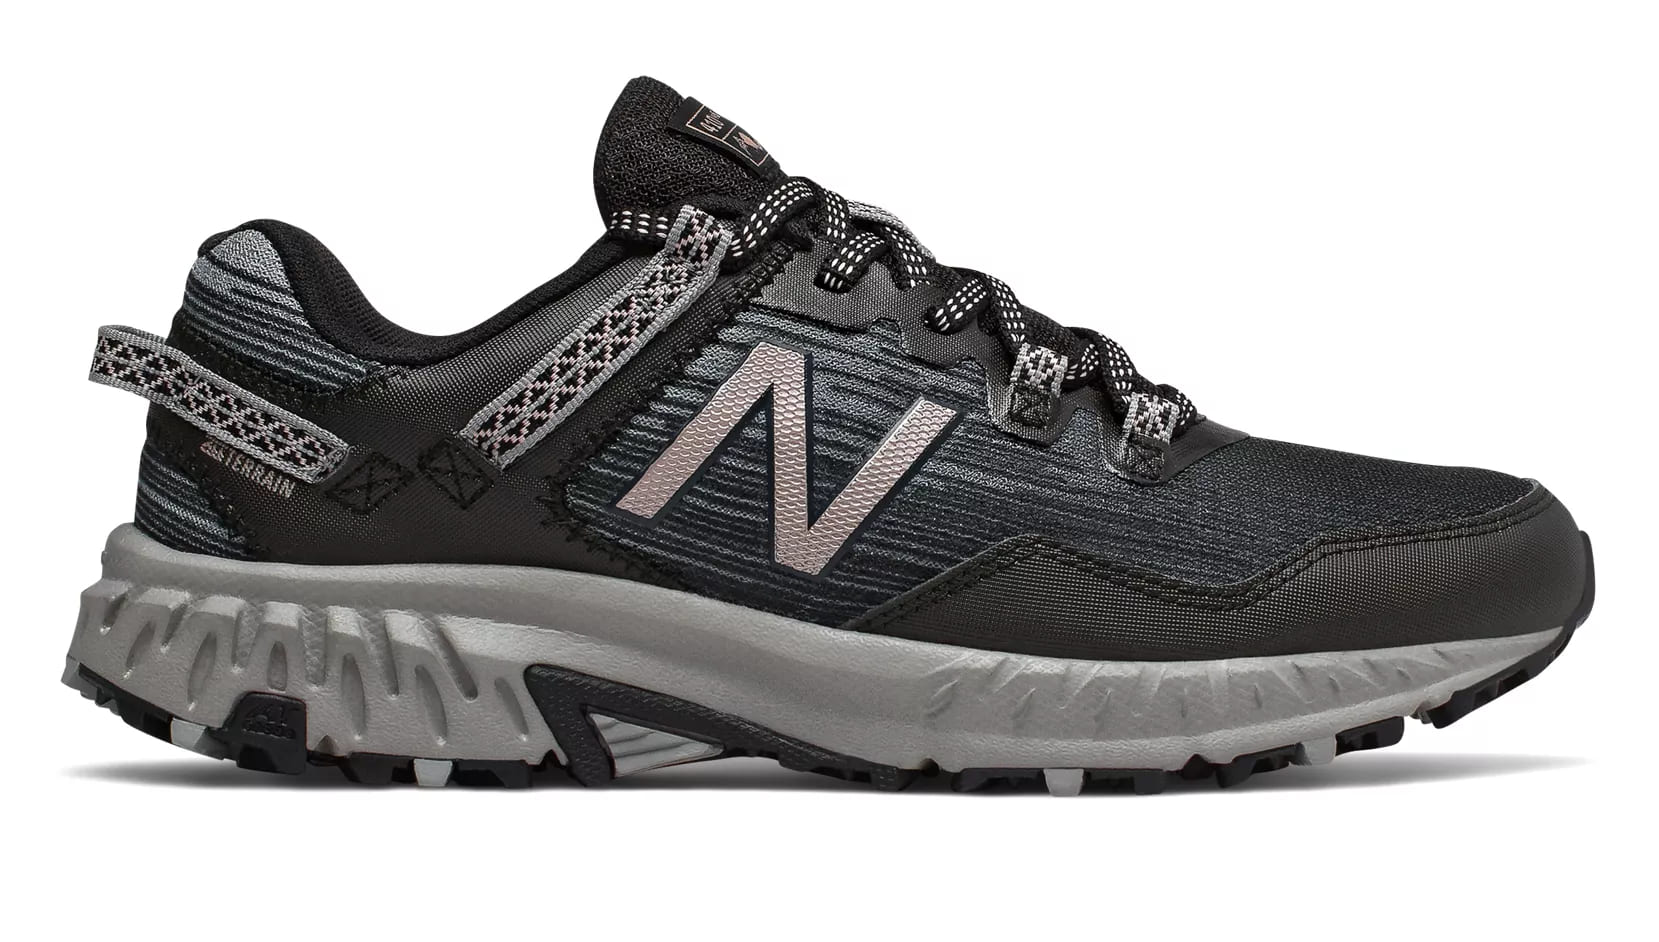 MT_WT410V6 New balance